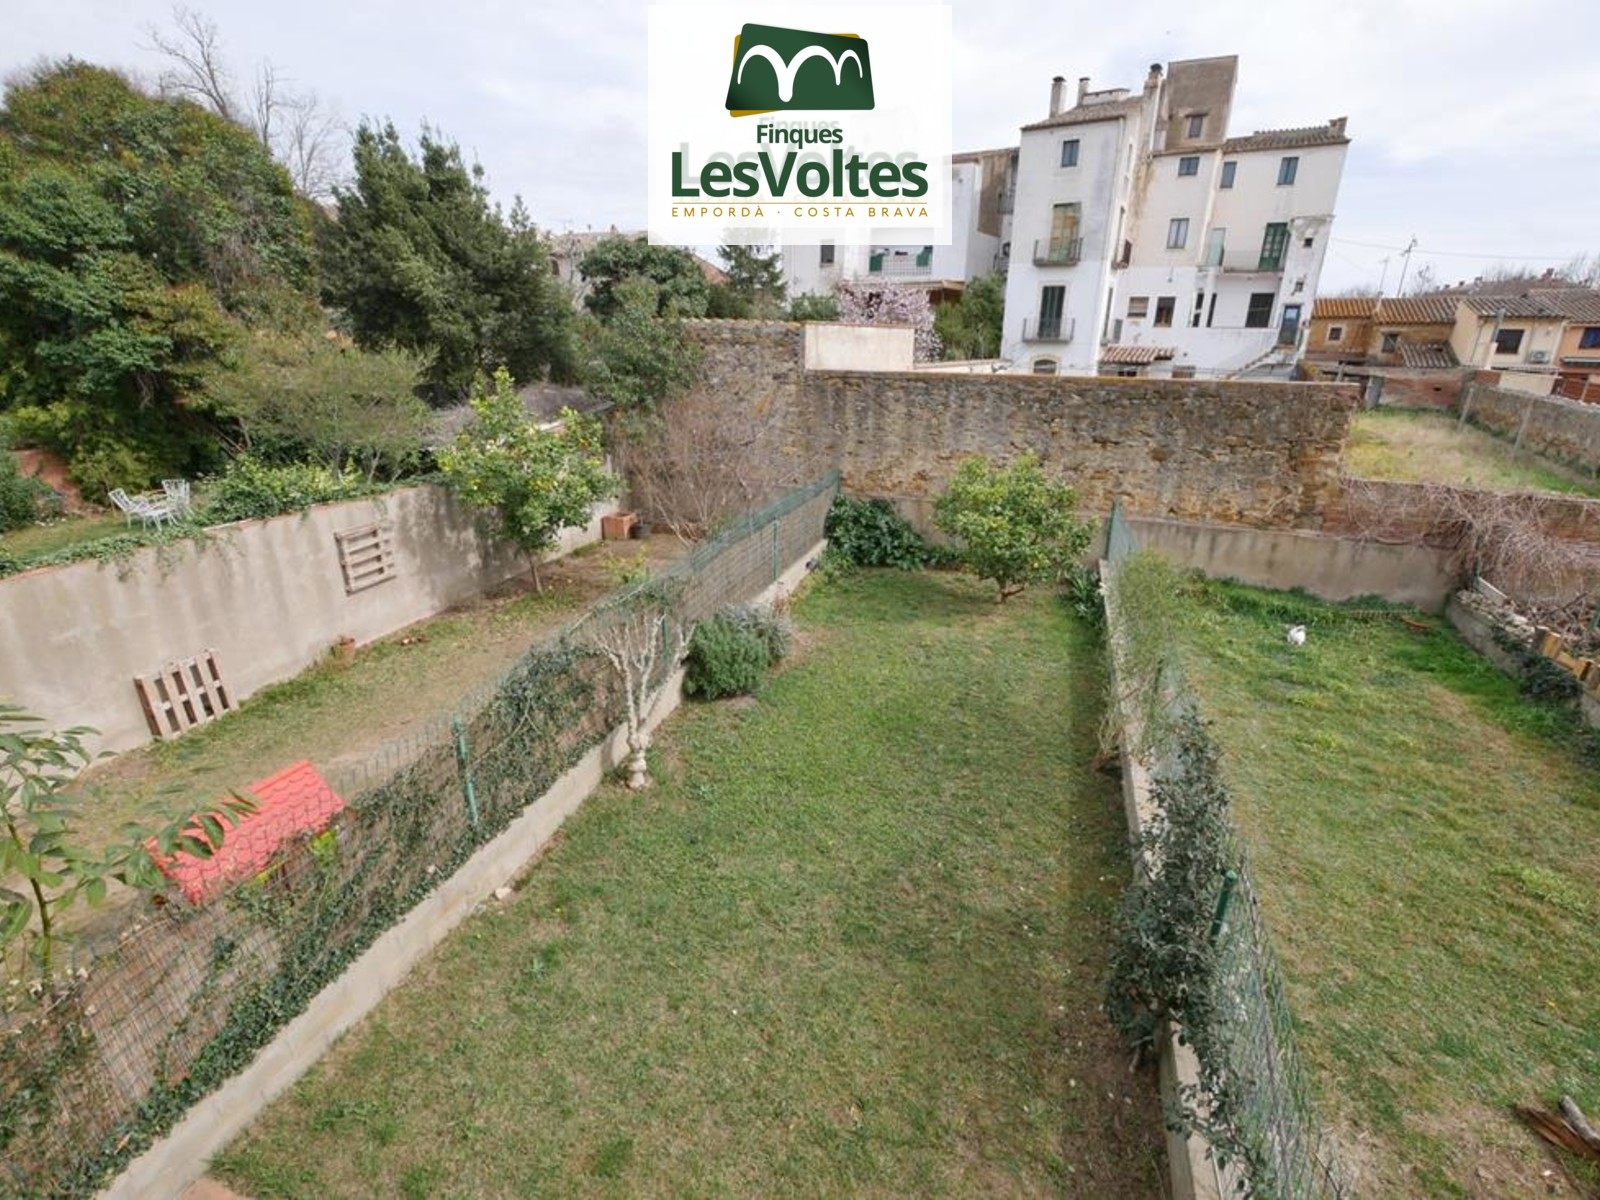 SEMI-DETACHED HOUSE OF 165 M2 WITH 3 FLOORS, GARAGE, GARDEN AND TERRACE FOR SALE IN LA BISBAL D'EMPORDÀ.